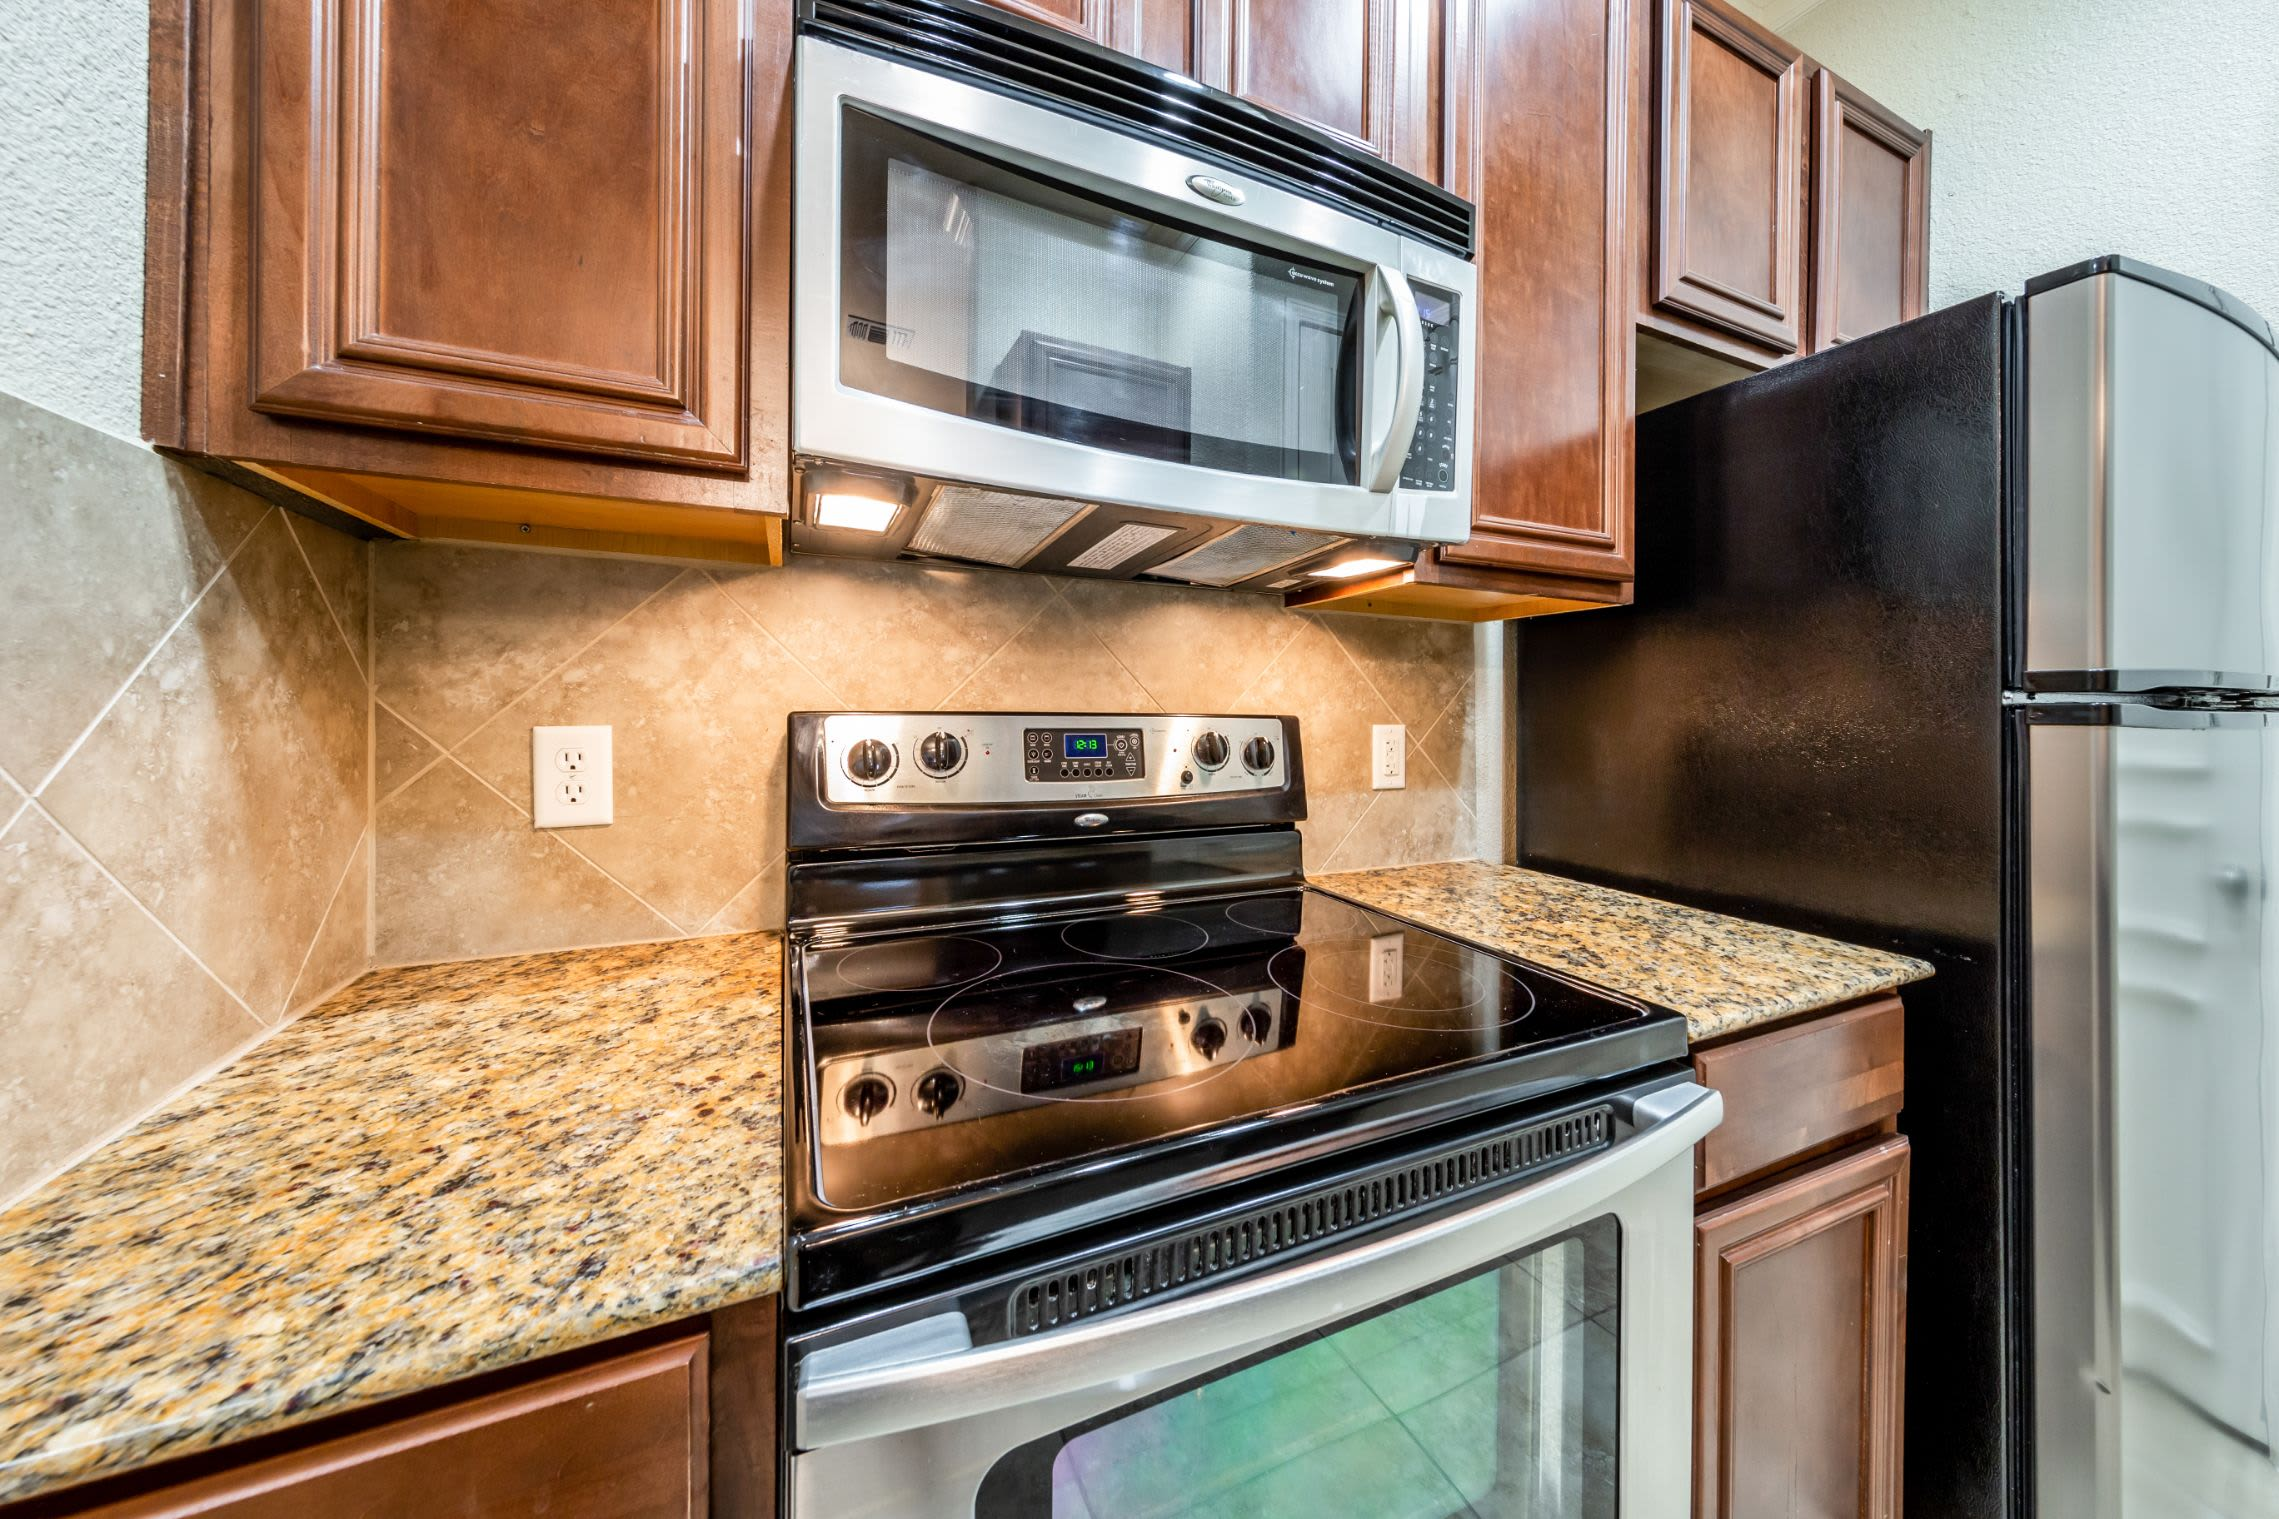 Kitchen with modern appliances at Marquis at TPC in San Antonio, Texas